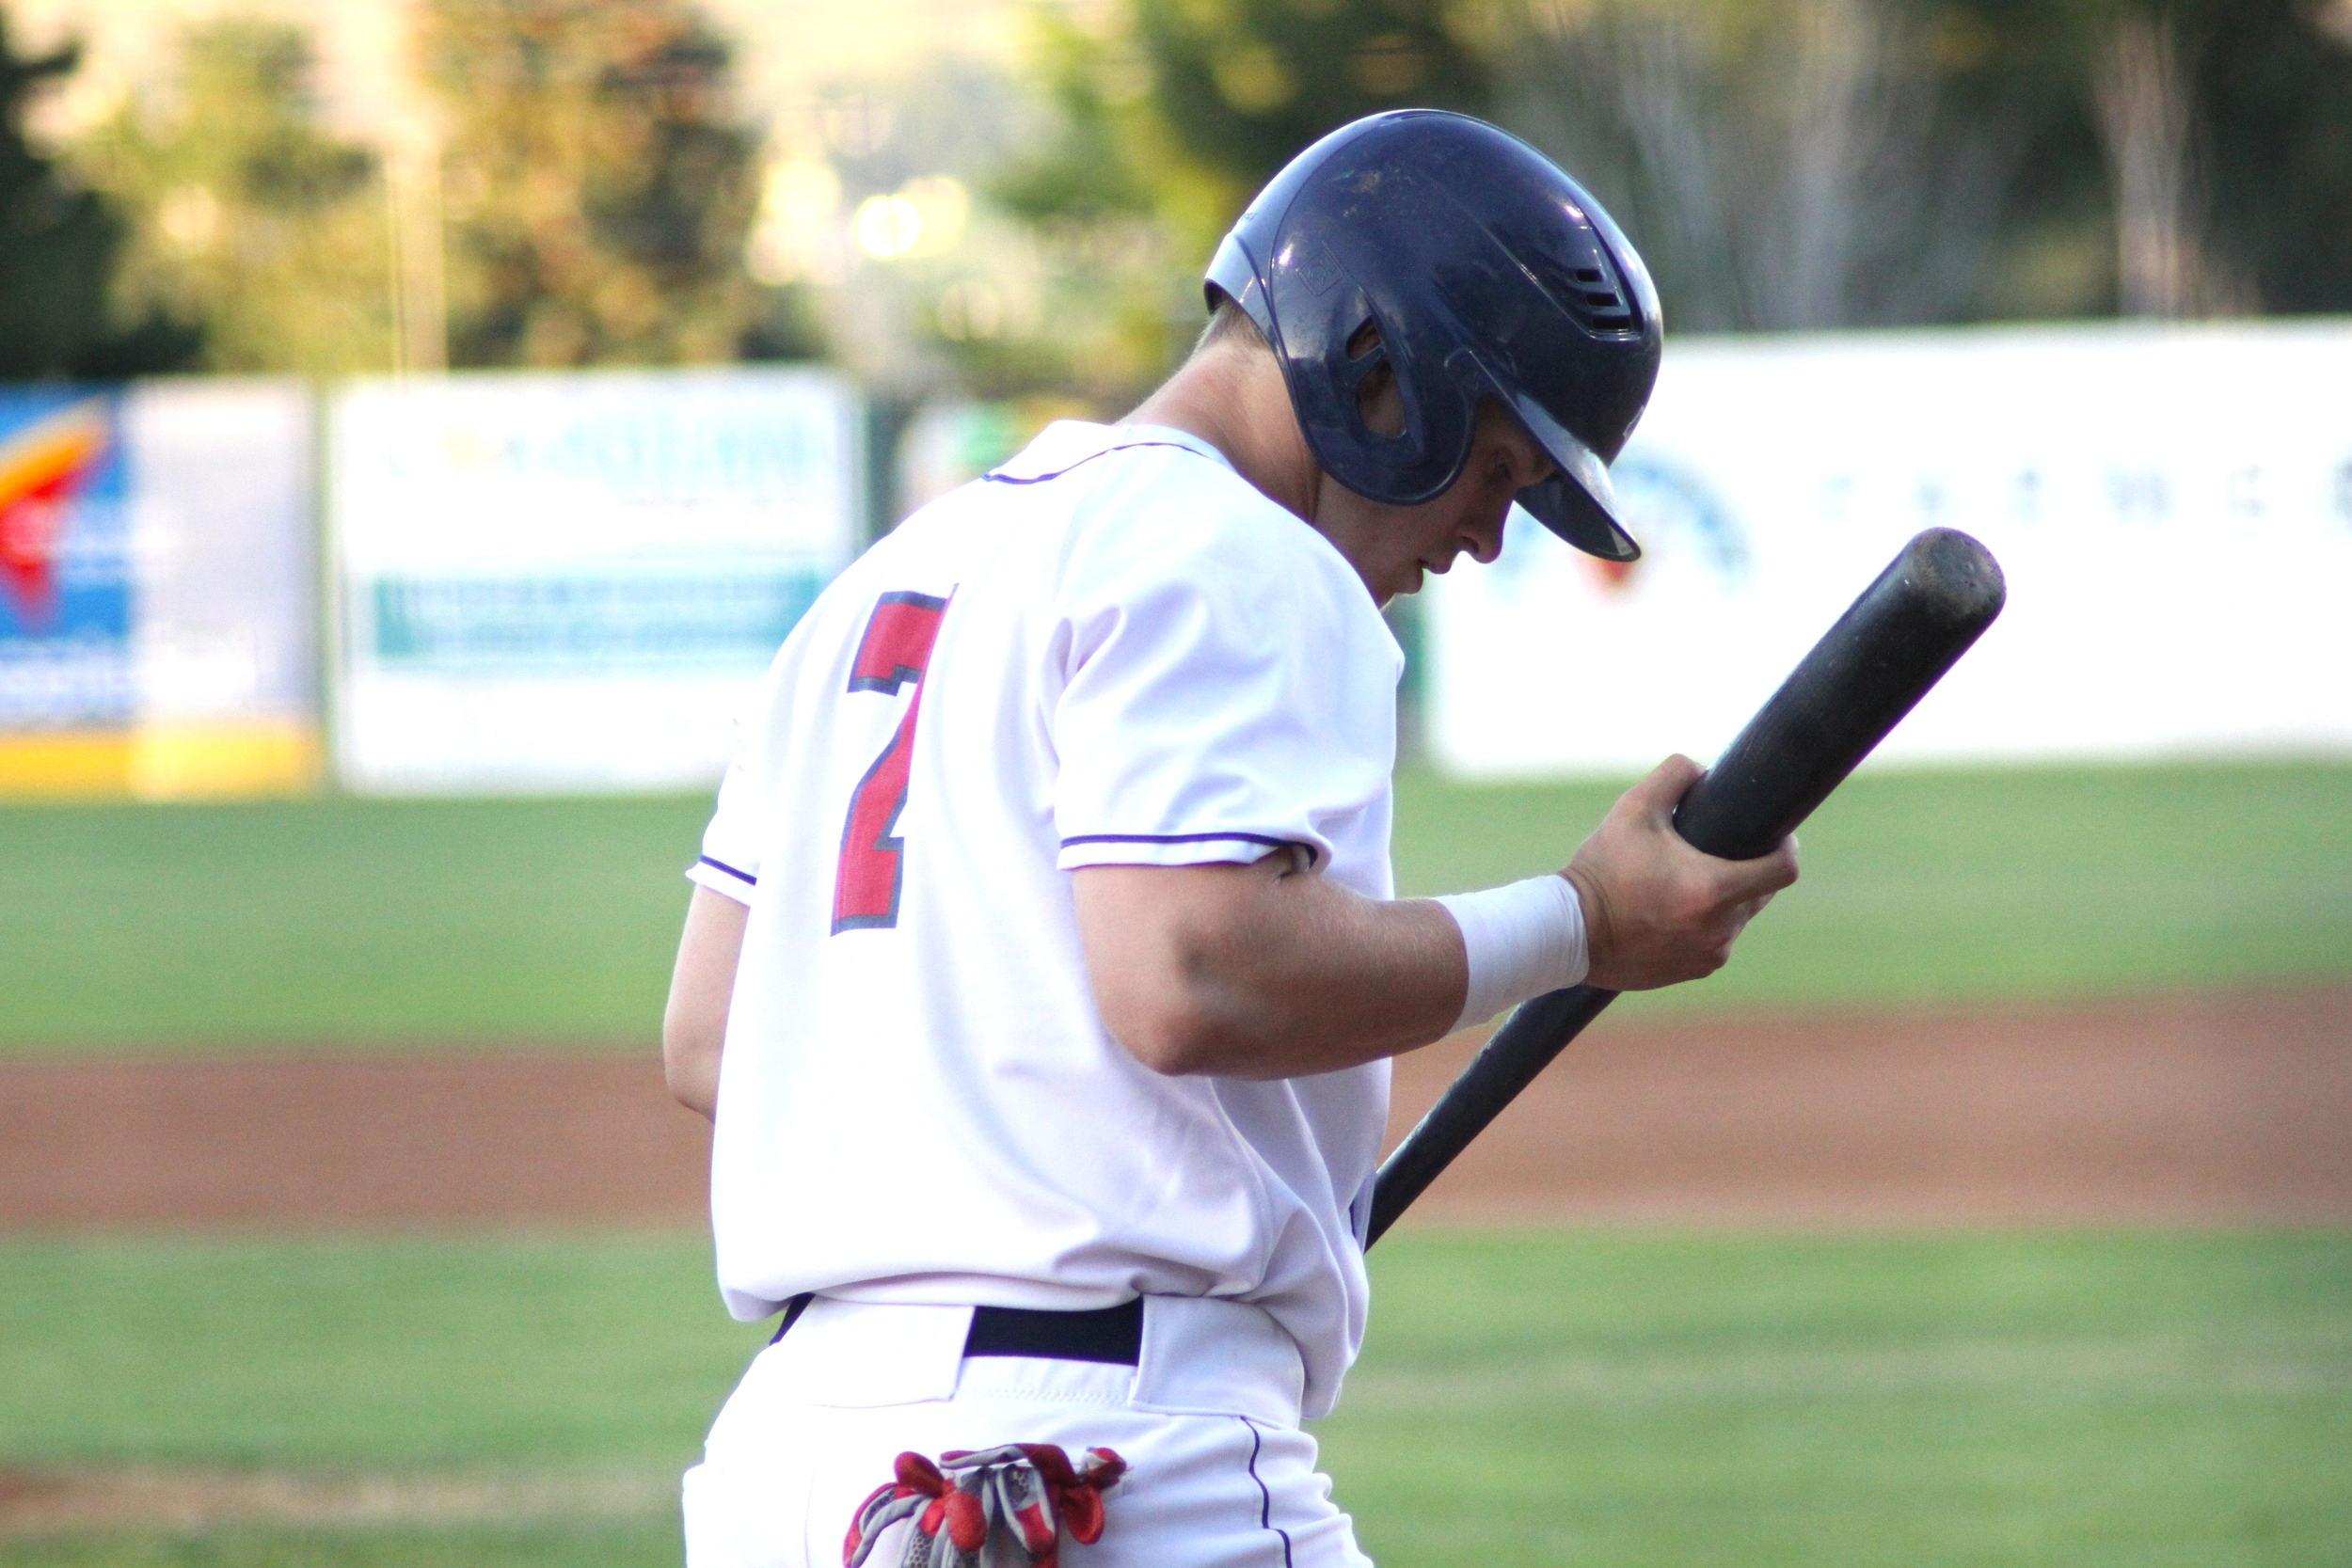 The Wenatchee AppleSox struggled at the plate Tuesday night, being kept off base for 6 2/3 innings and no-hit through 7 innings.